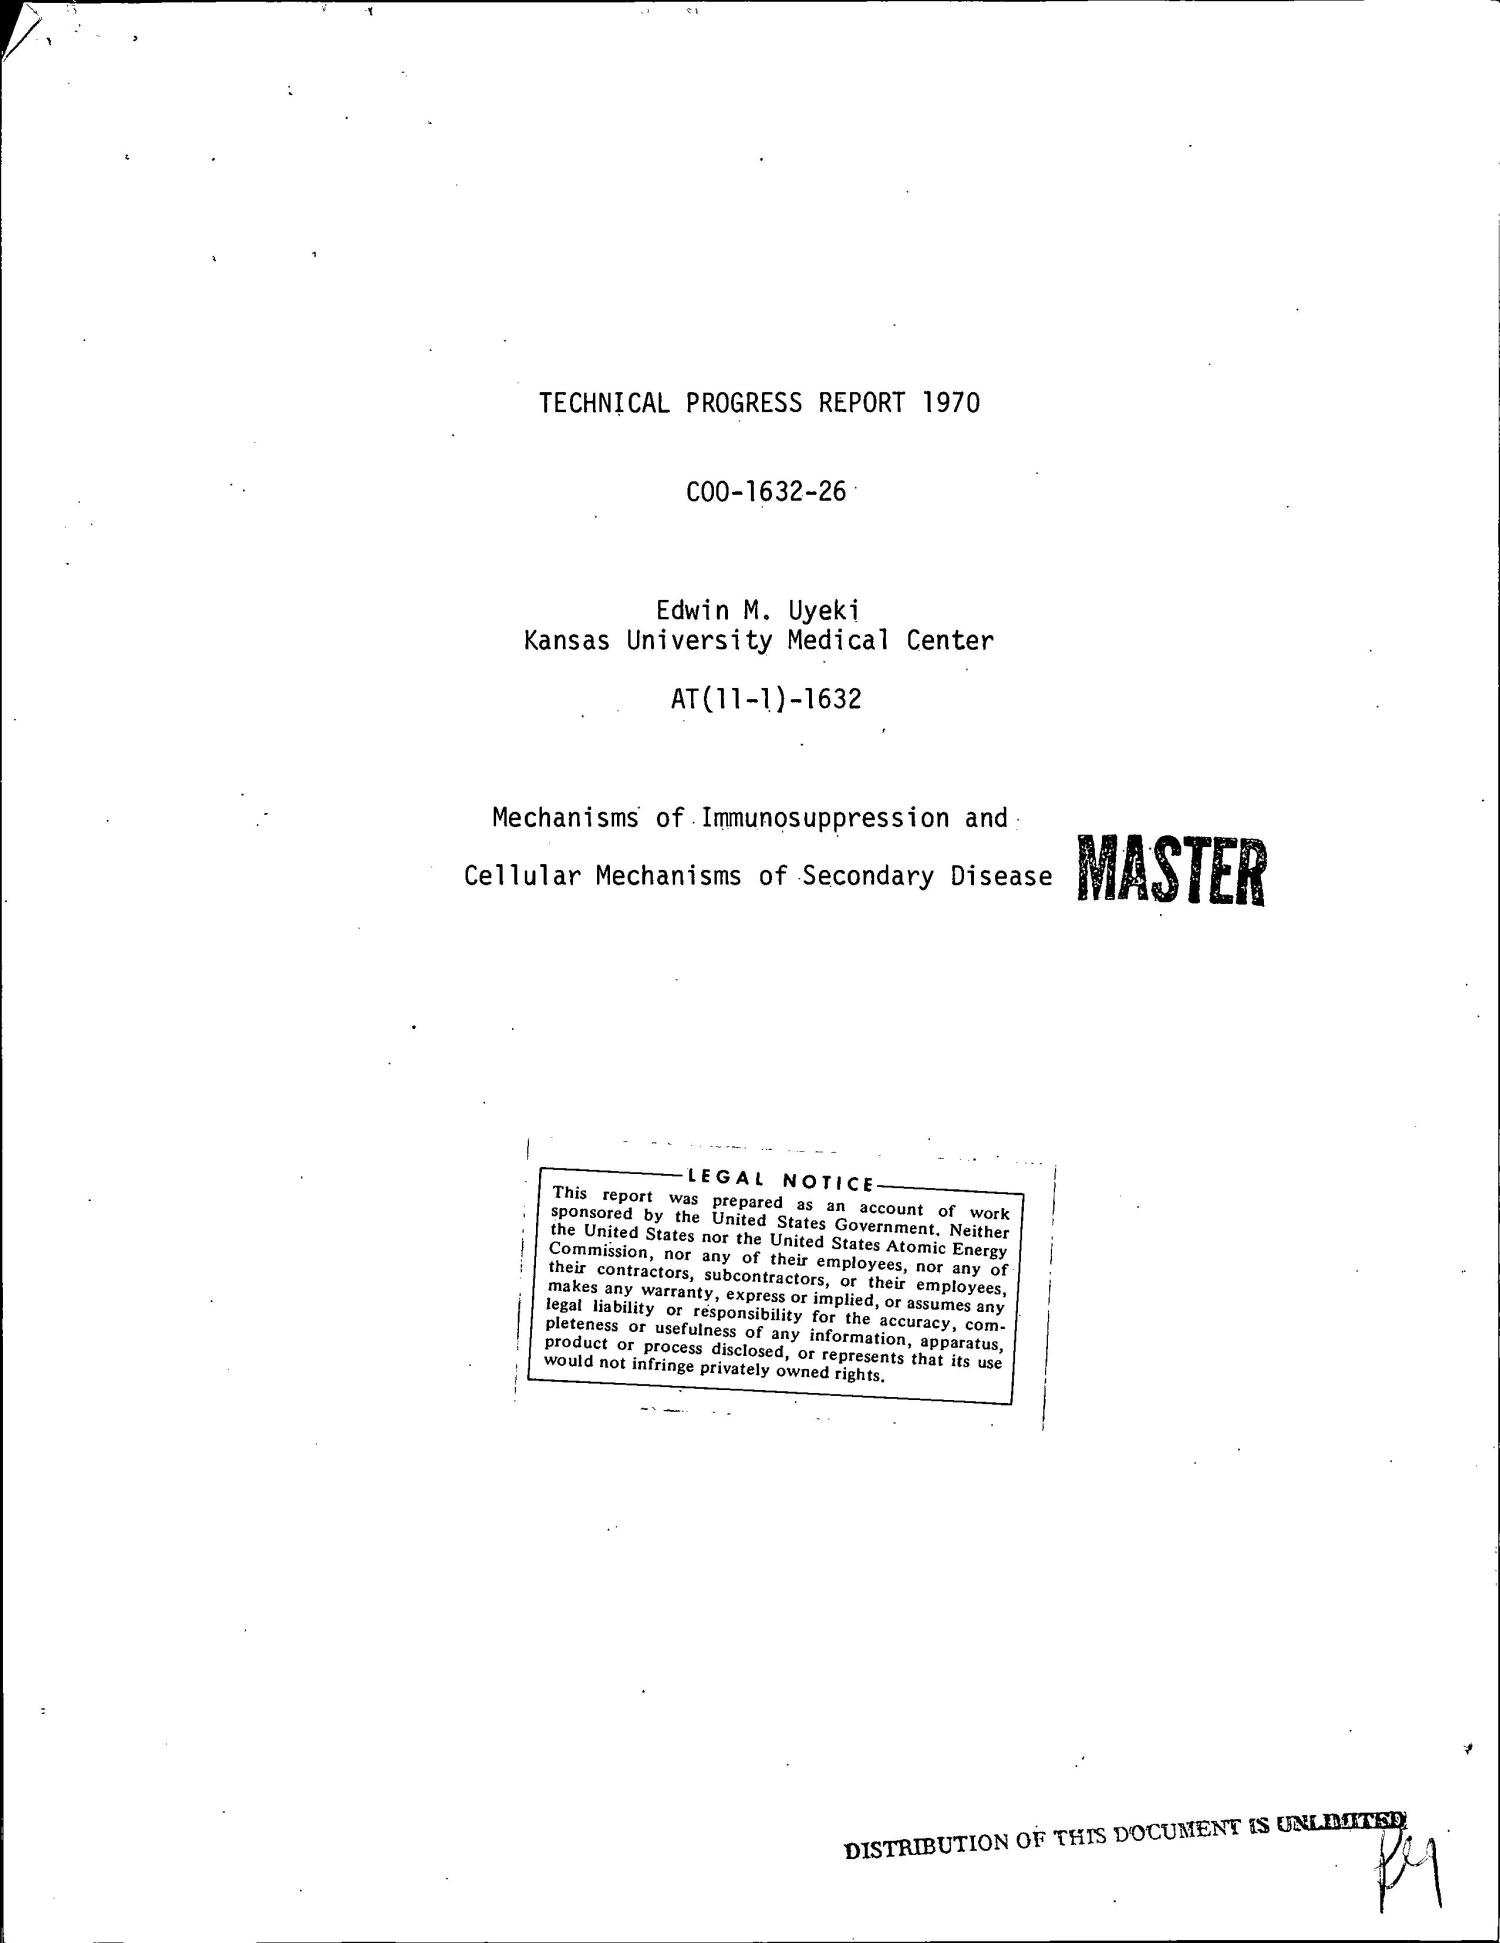 Mechanisms of Immunosuppression and Cellular Mechanisms of Secondary Disease. Technical Progress Report, 1970.                                                                                                      [Sequence #]: 1 of 16